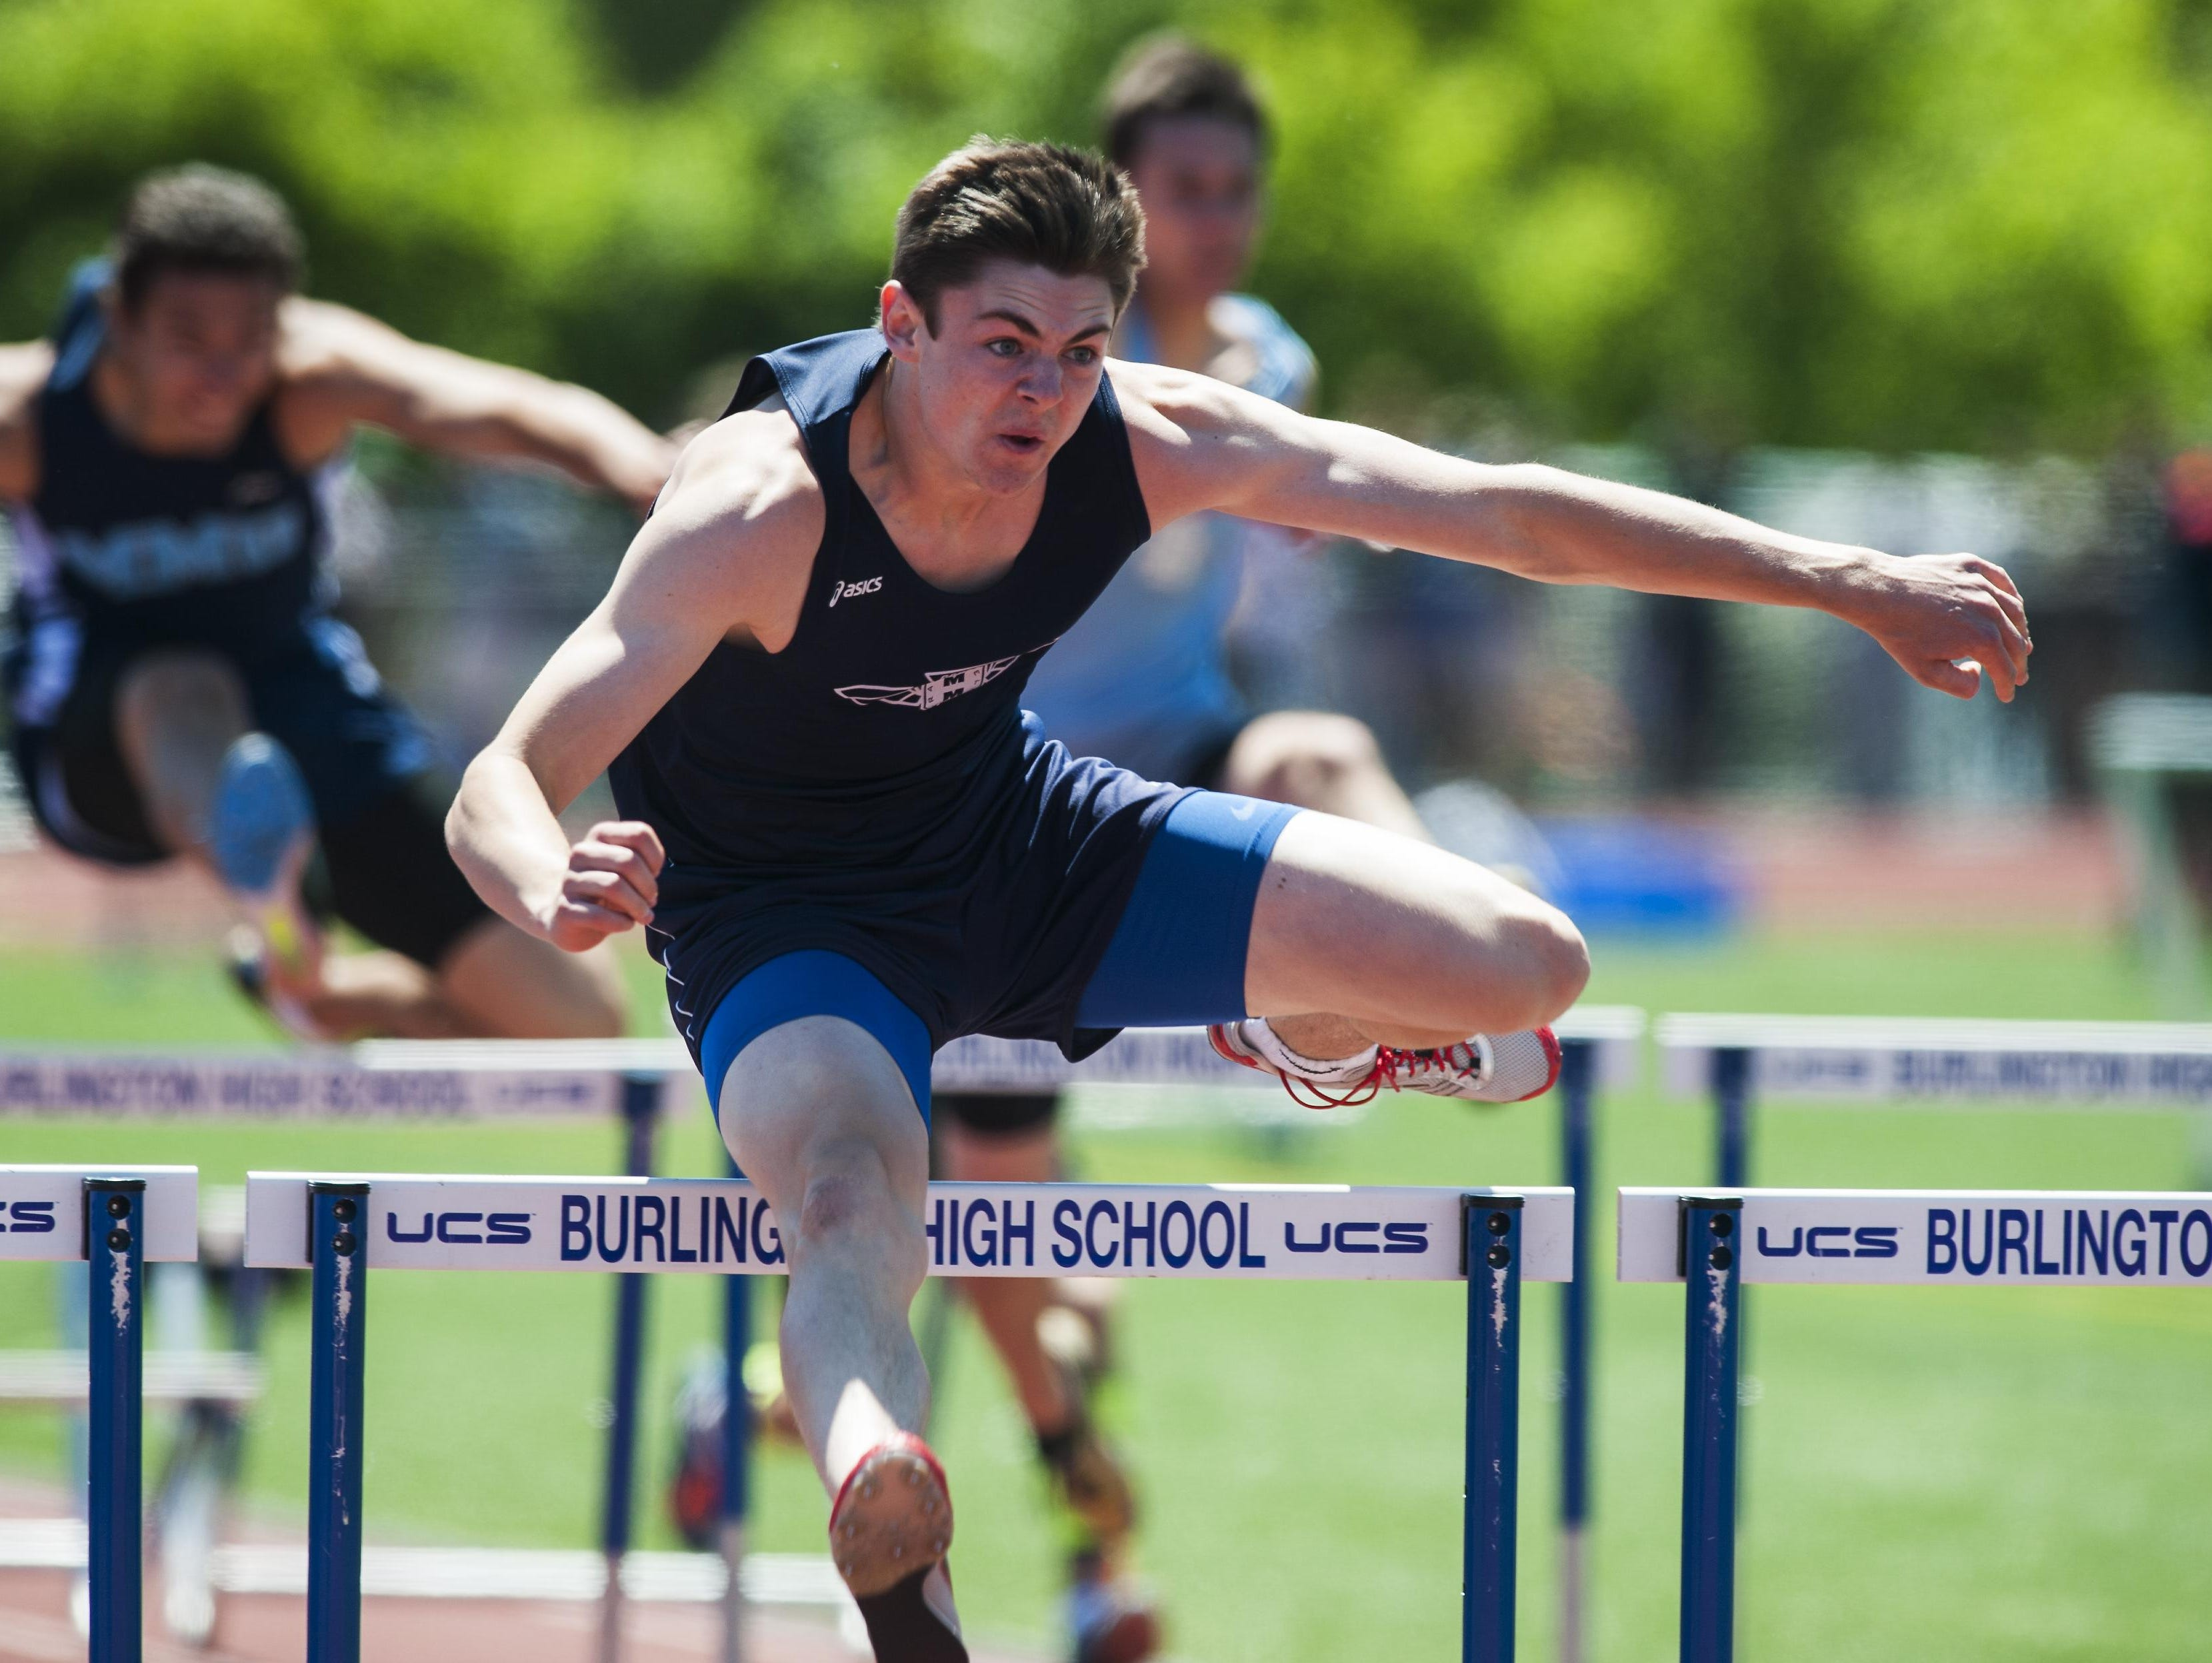 Mount Mansfield's Alec Eschholz competes in the 110m hurdles race during the high school track and field state championship meet at Burlington High School on Saturday June 6, 2015 in Burlington, Vermont.